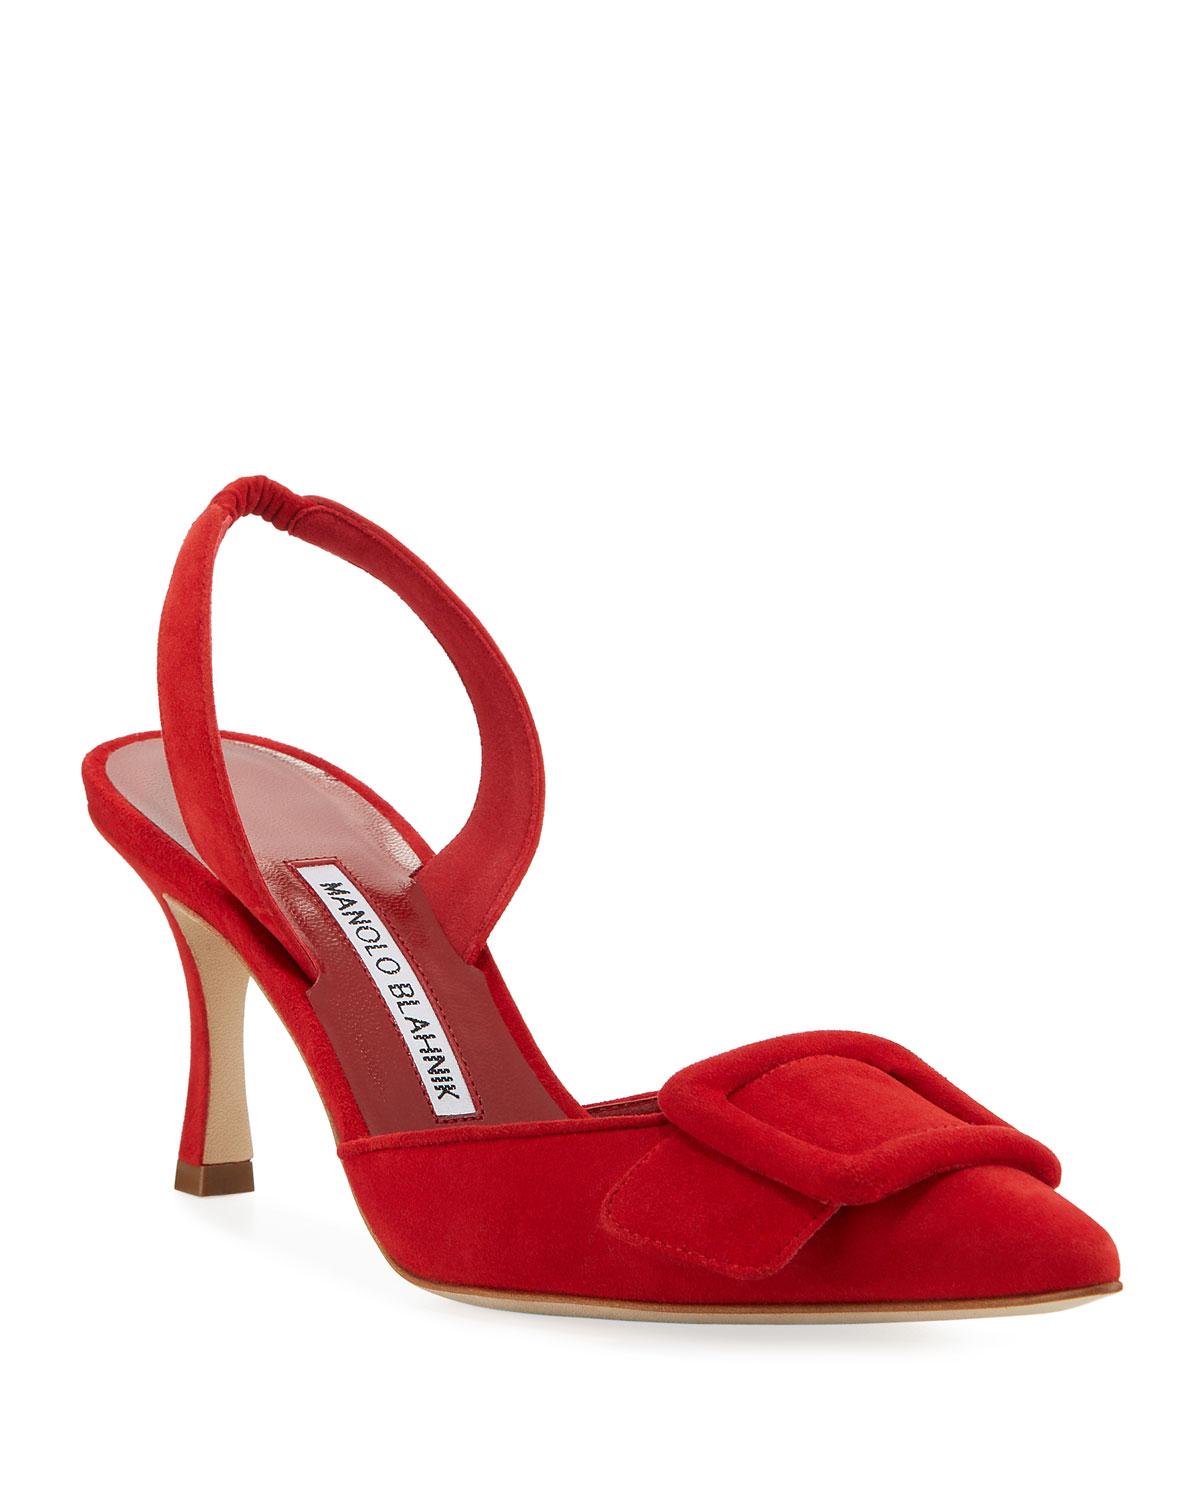 May Suede Slingback Buckle Pumps